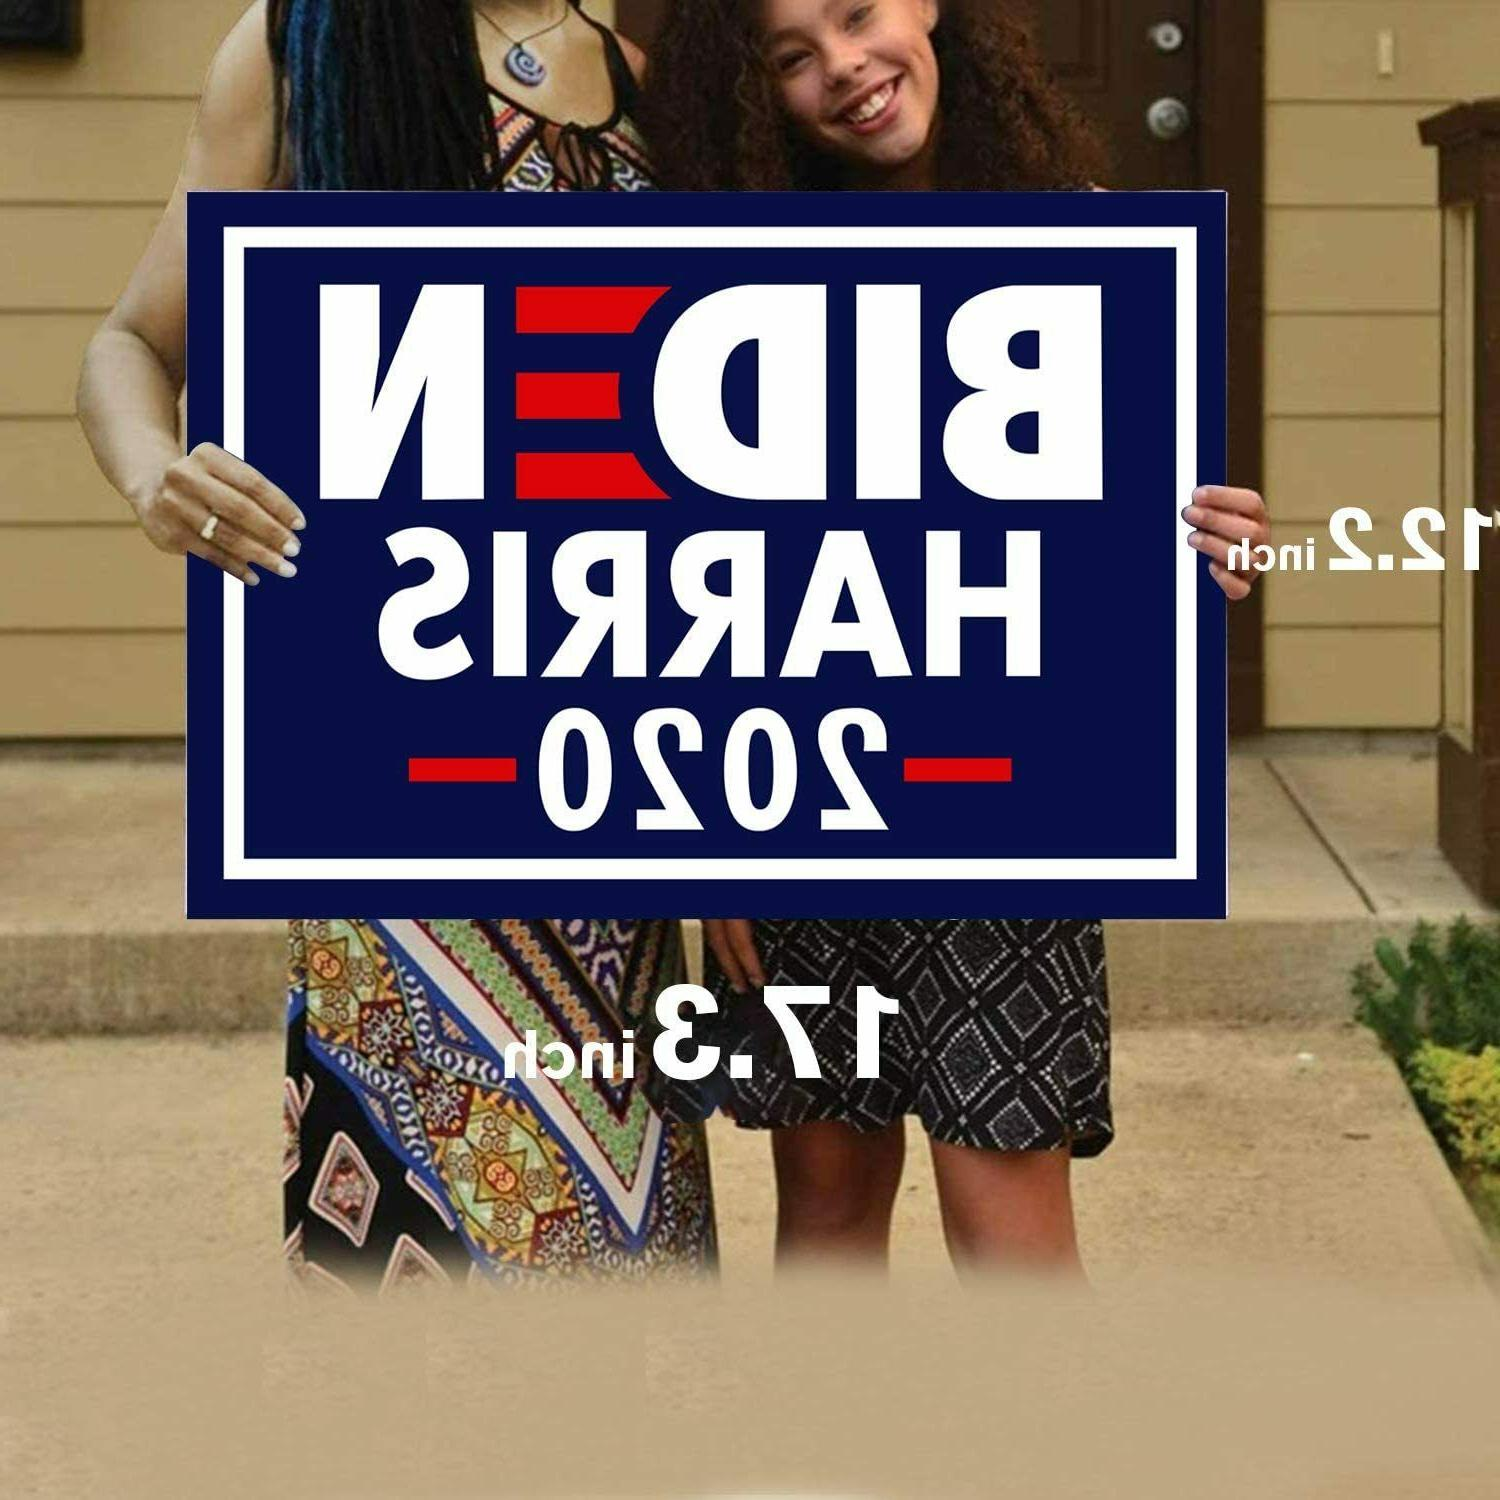 "12""x 18"" 2020 USA Elections Yard Sign"